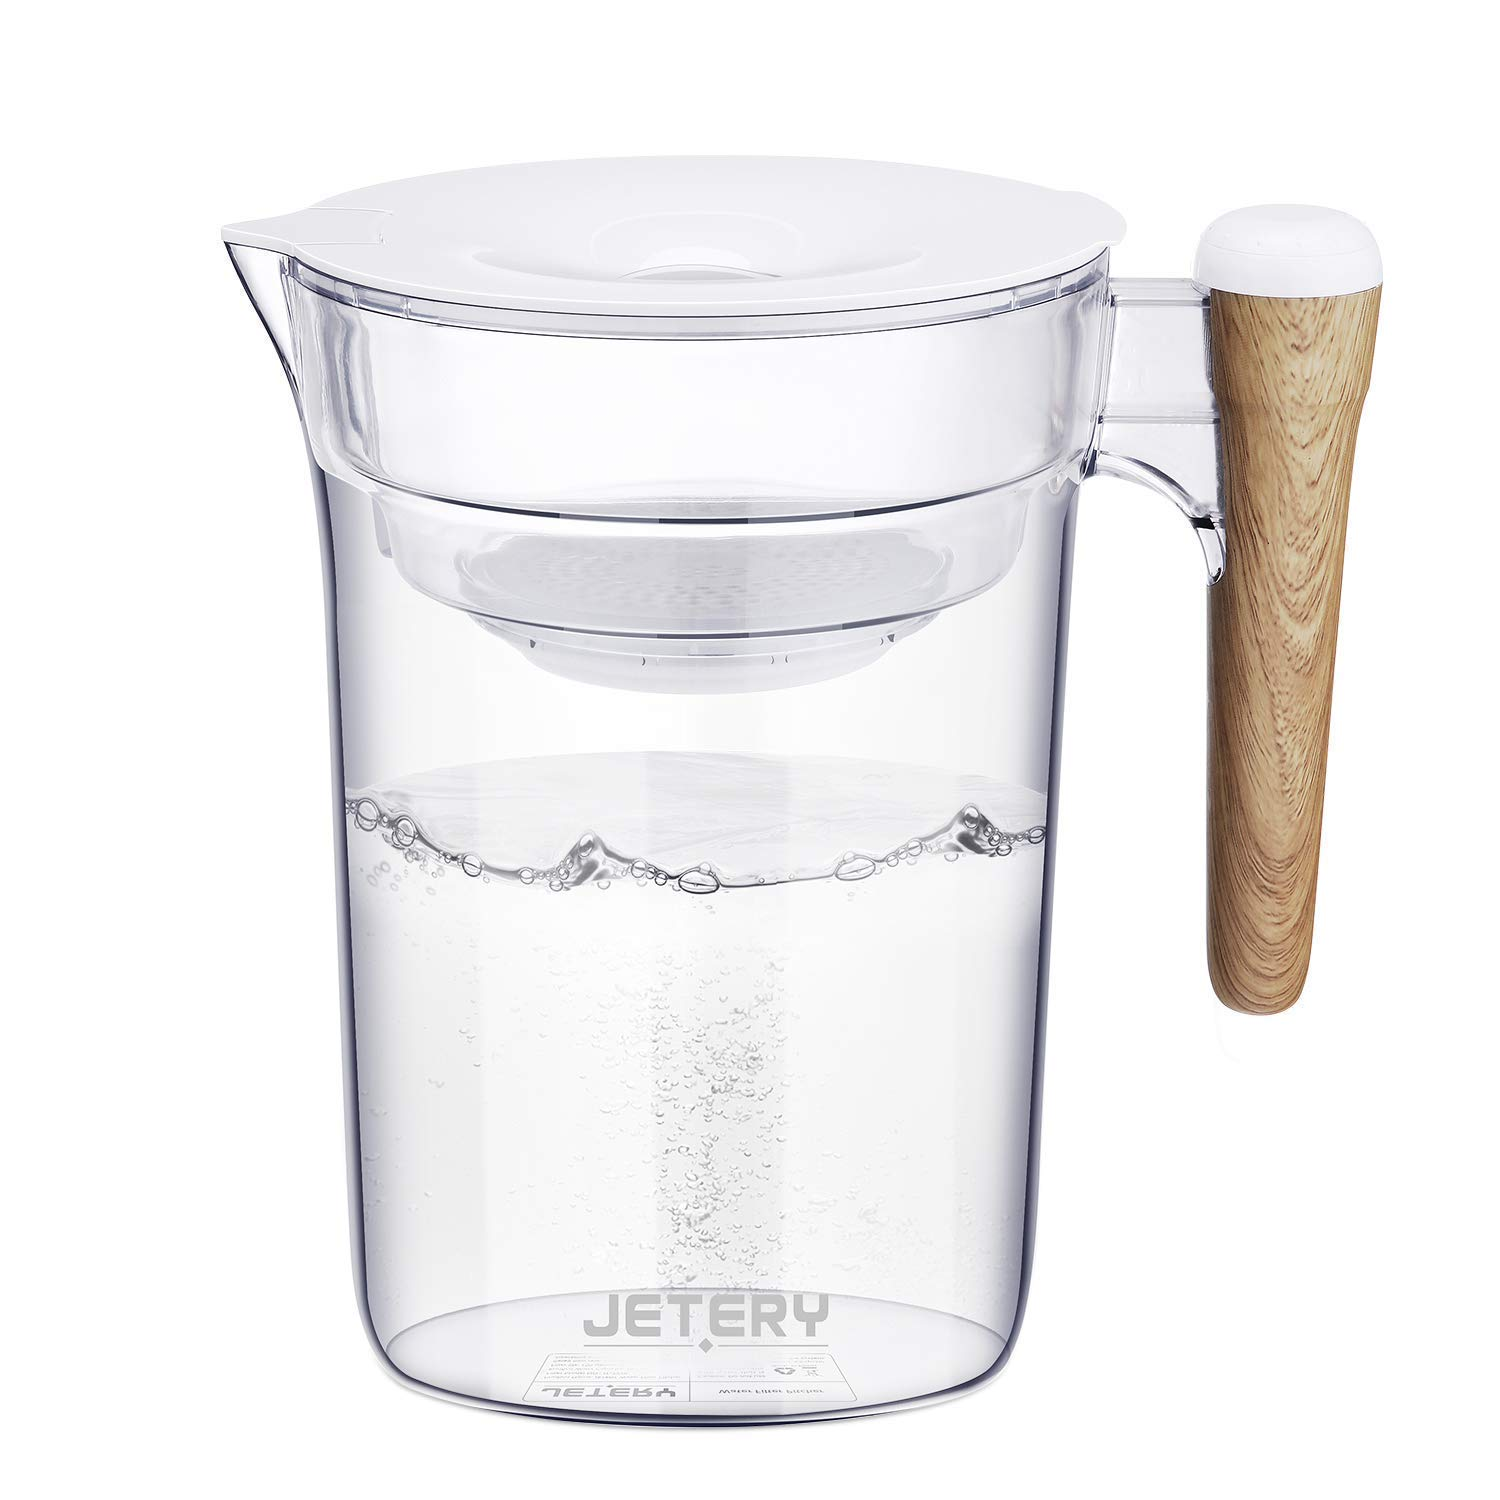 JETERY Water Filter Pitcher 10 Cup Long-Lasting Purifier